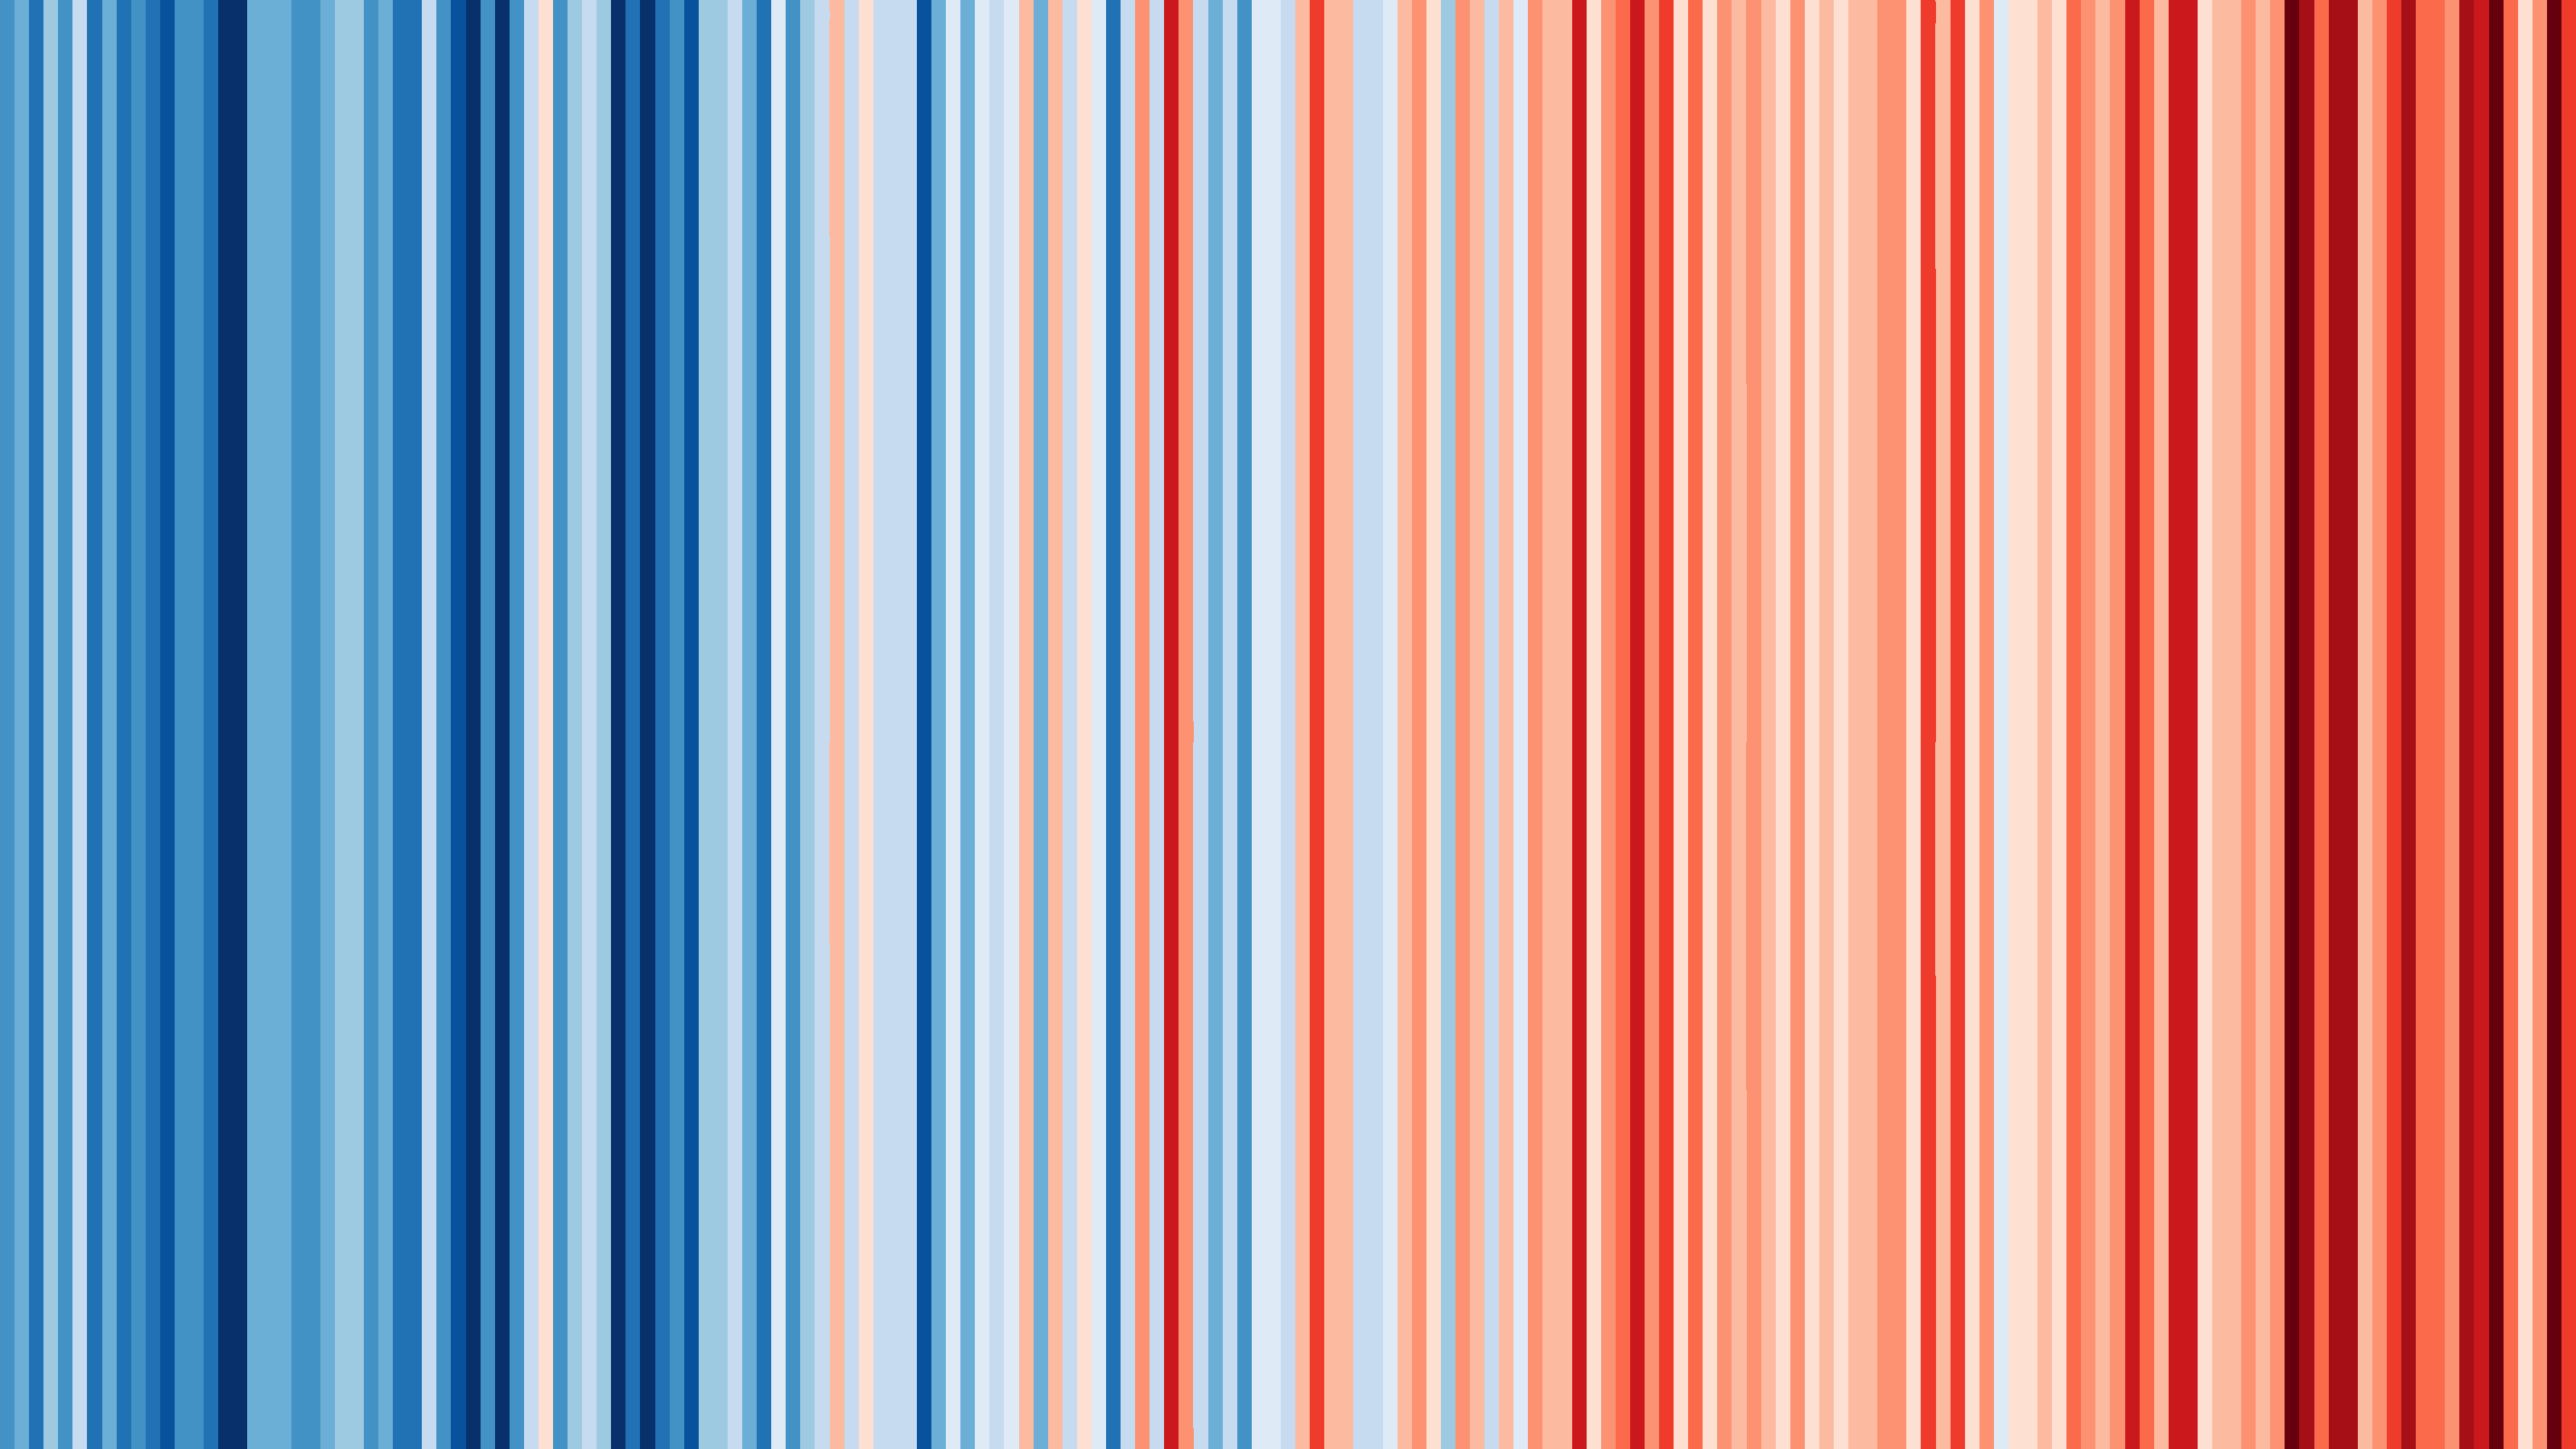 Warming stripes - Annual temperatures in Toronto from 1841-2017